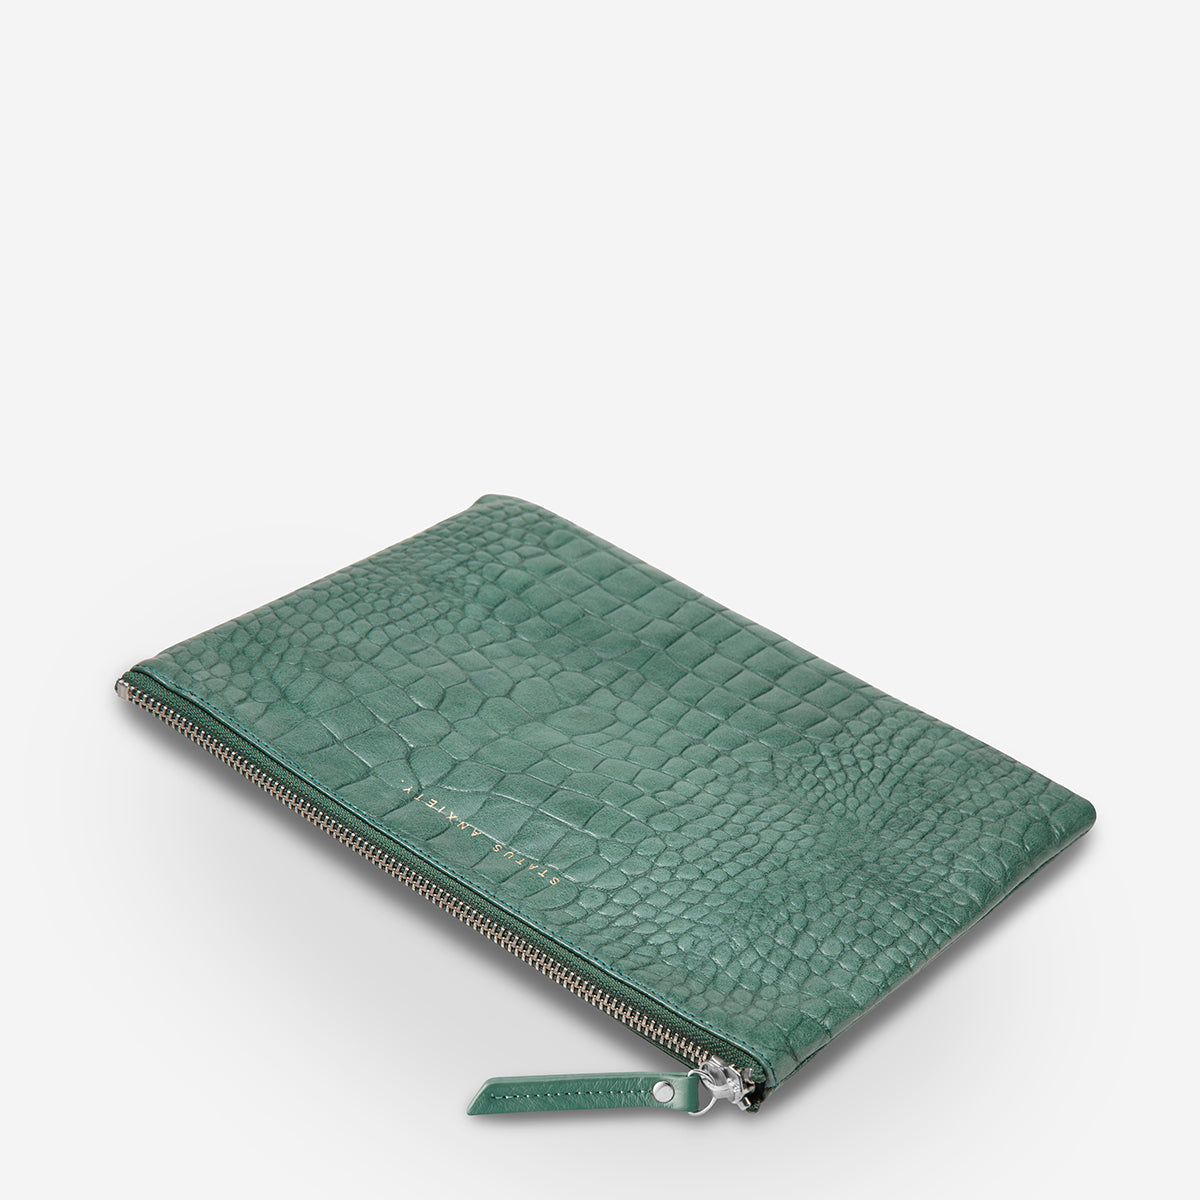 Status Anxiety Fake It Women's Leather Clutch Pouch - Teal Croc Emboss